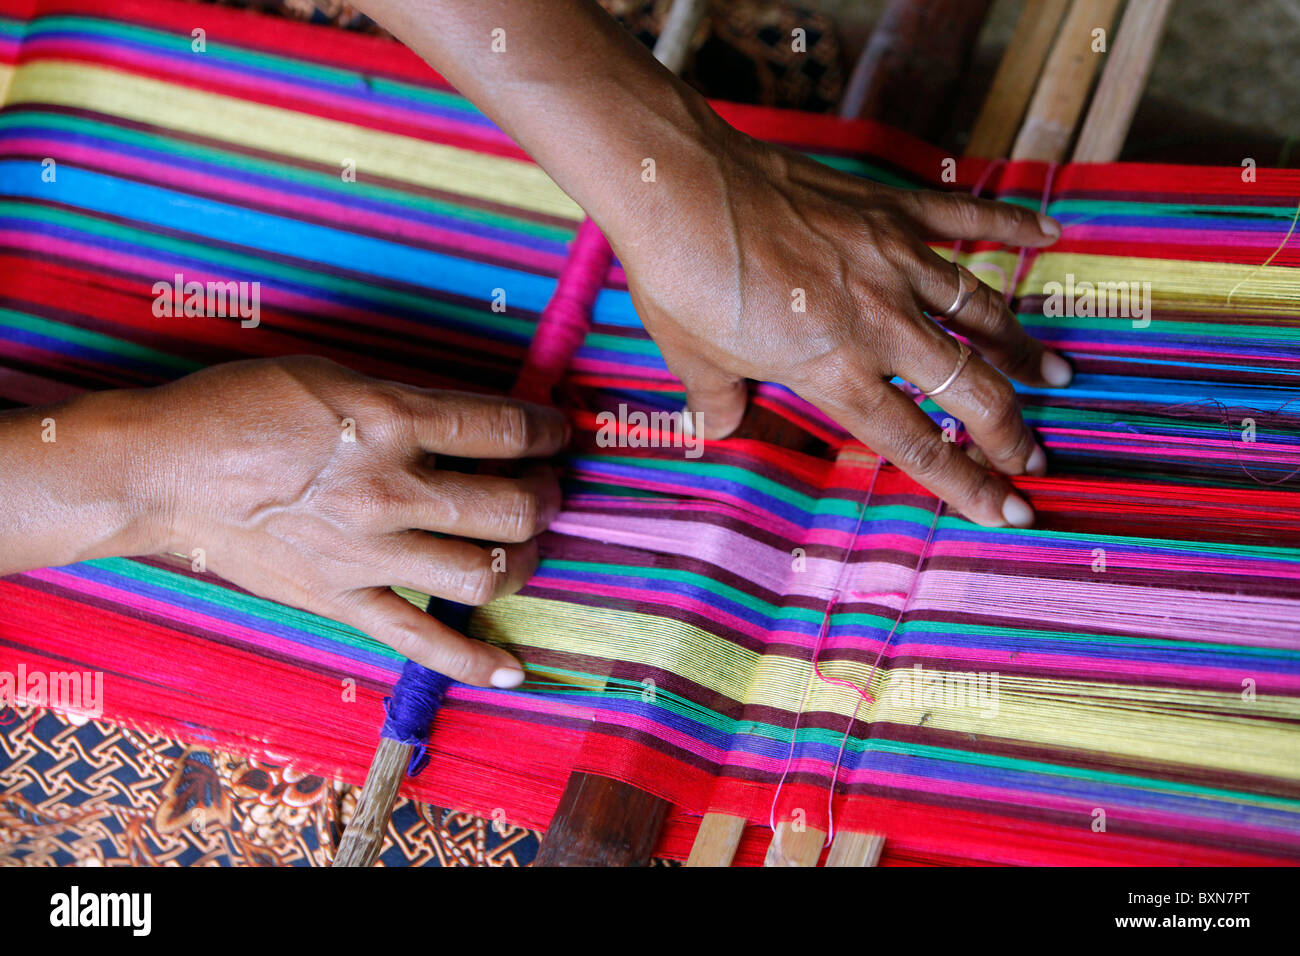 Woman traditionally weaving tais on backstrap loom in Timor Leste (East Timor) - Stock Image